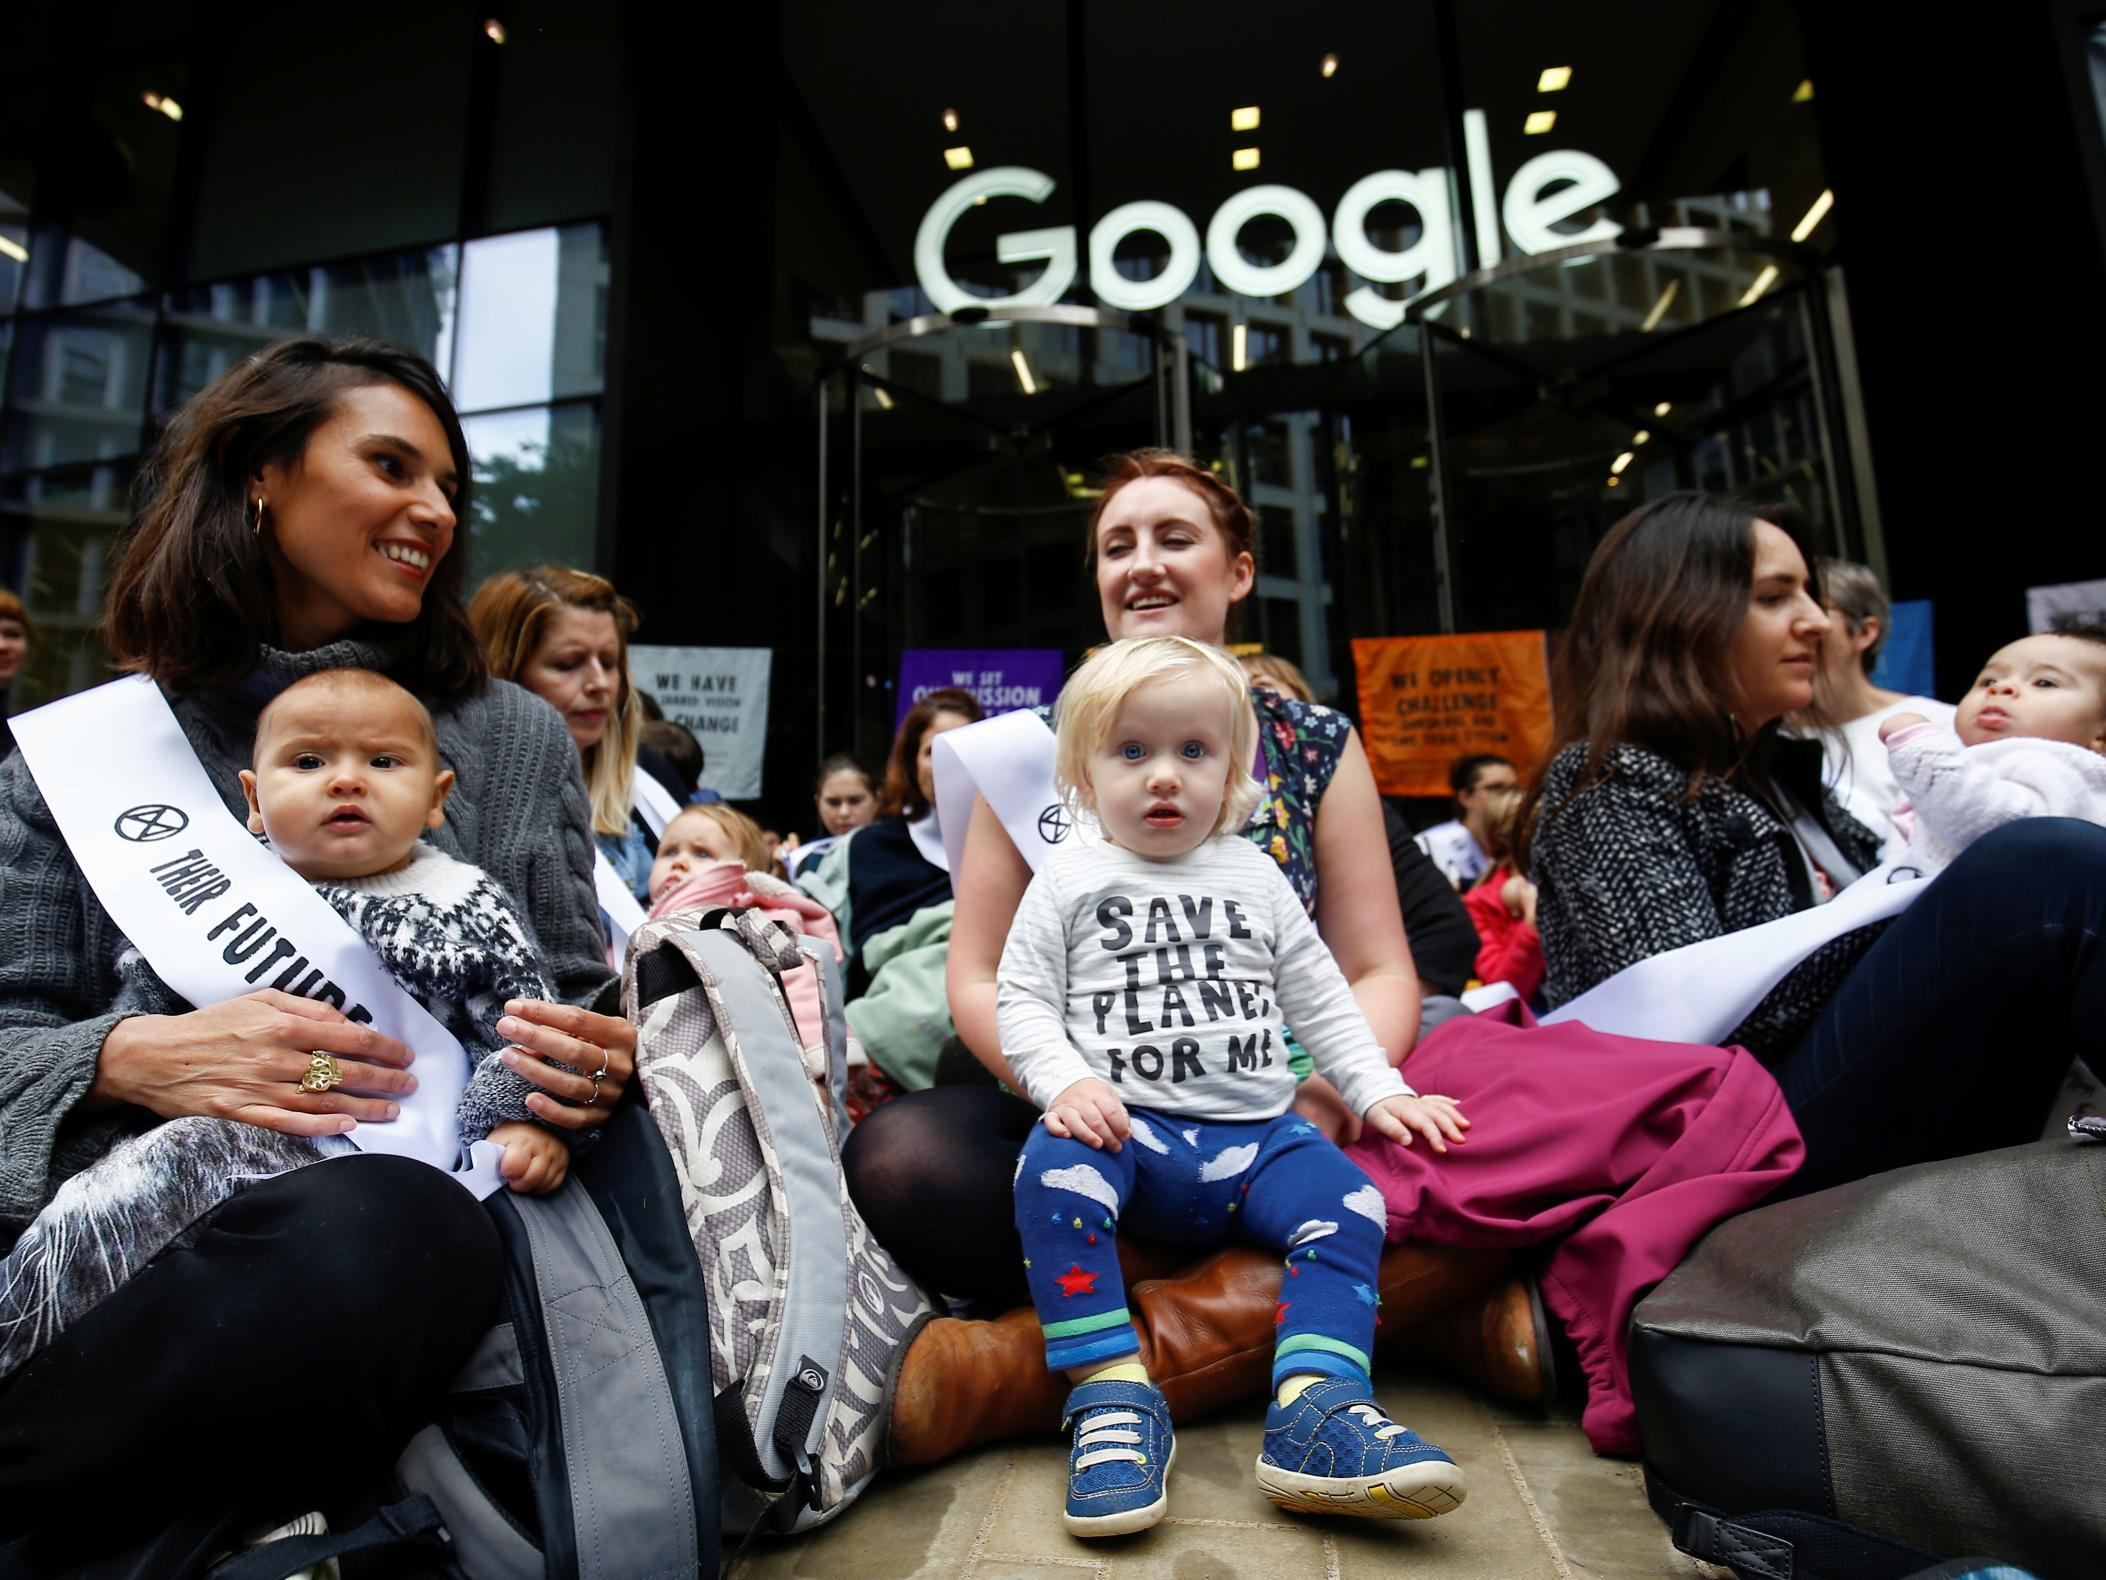 Extinction Rebellion protests – live: Mothers and babies blockade Google HQ as Greta Thunberg condemns 'unlawful' police ban on demonstrations